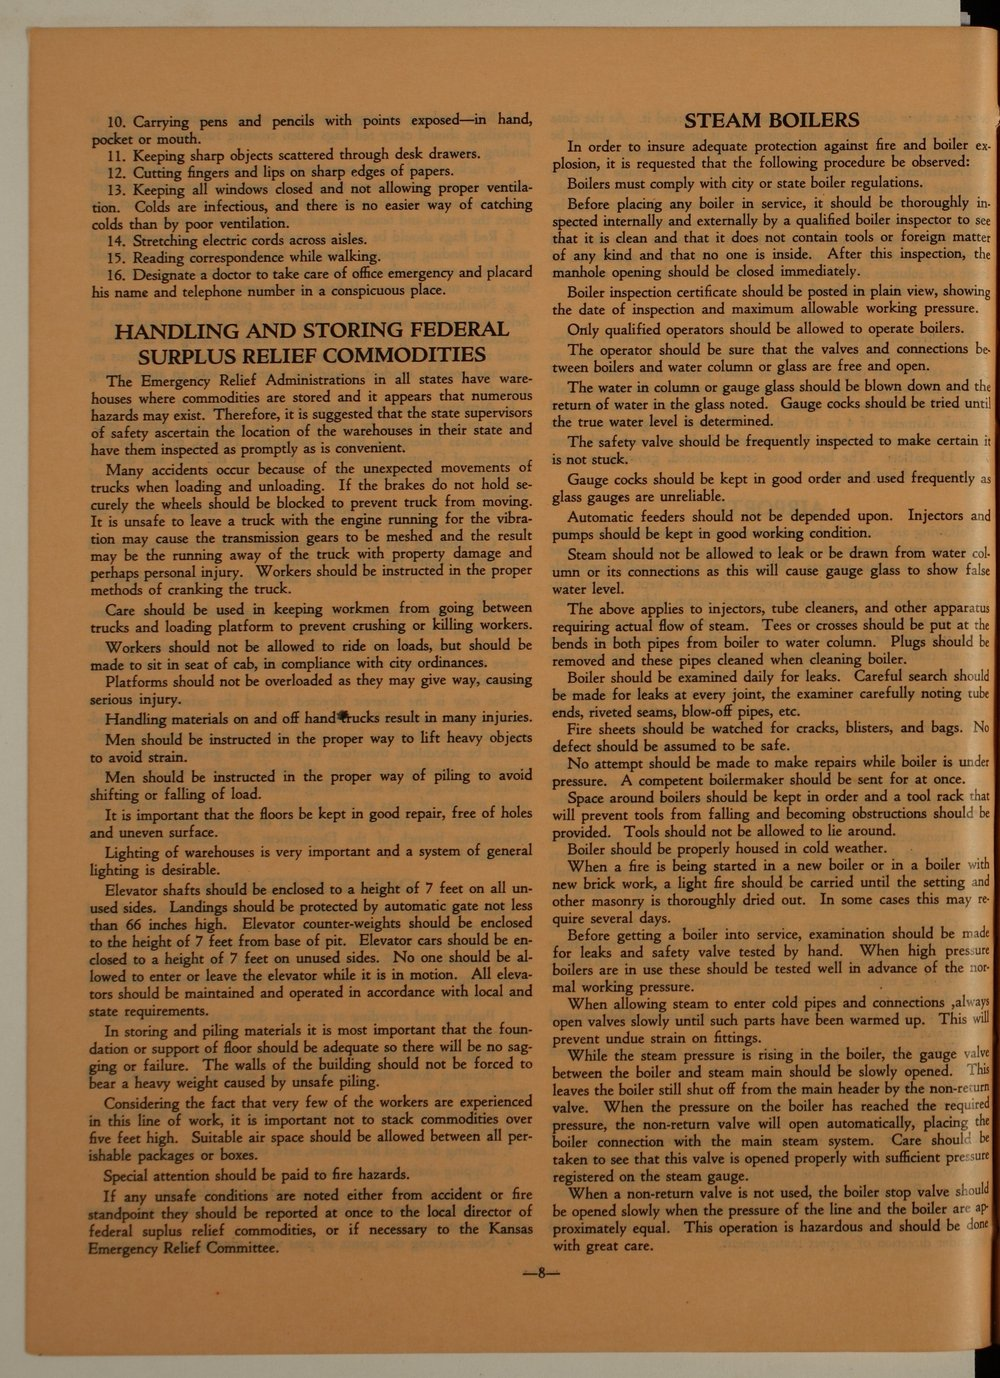 Kansas Emergency Relief Committee, bulletin 105 - 8